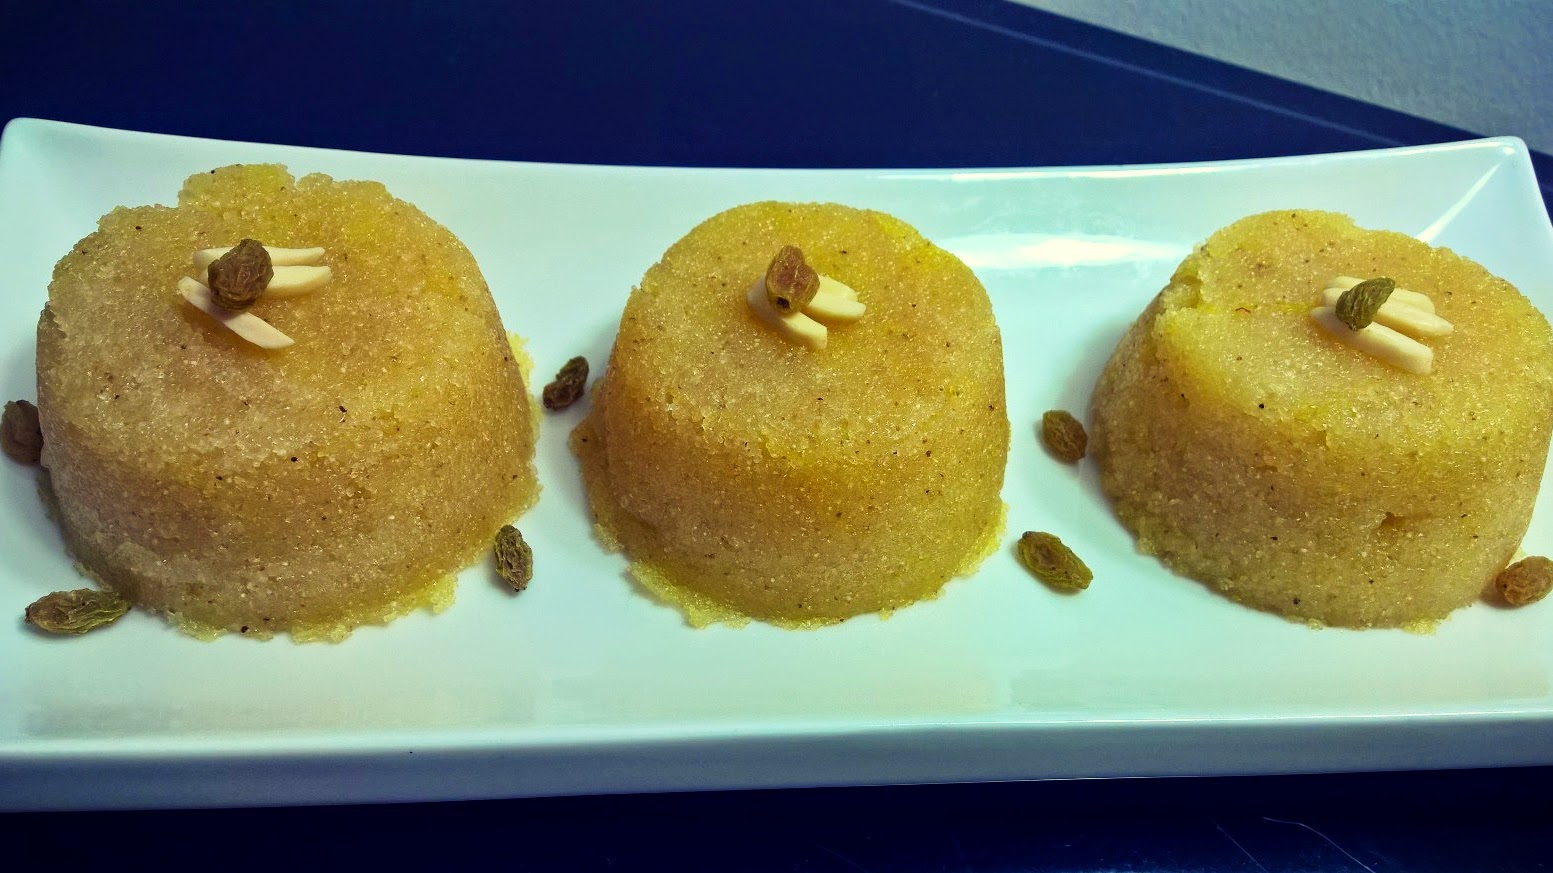 Sheera - Rava Dessert - Indian Dessert